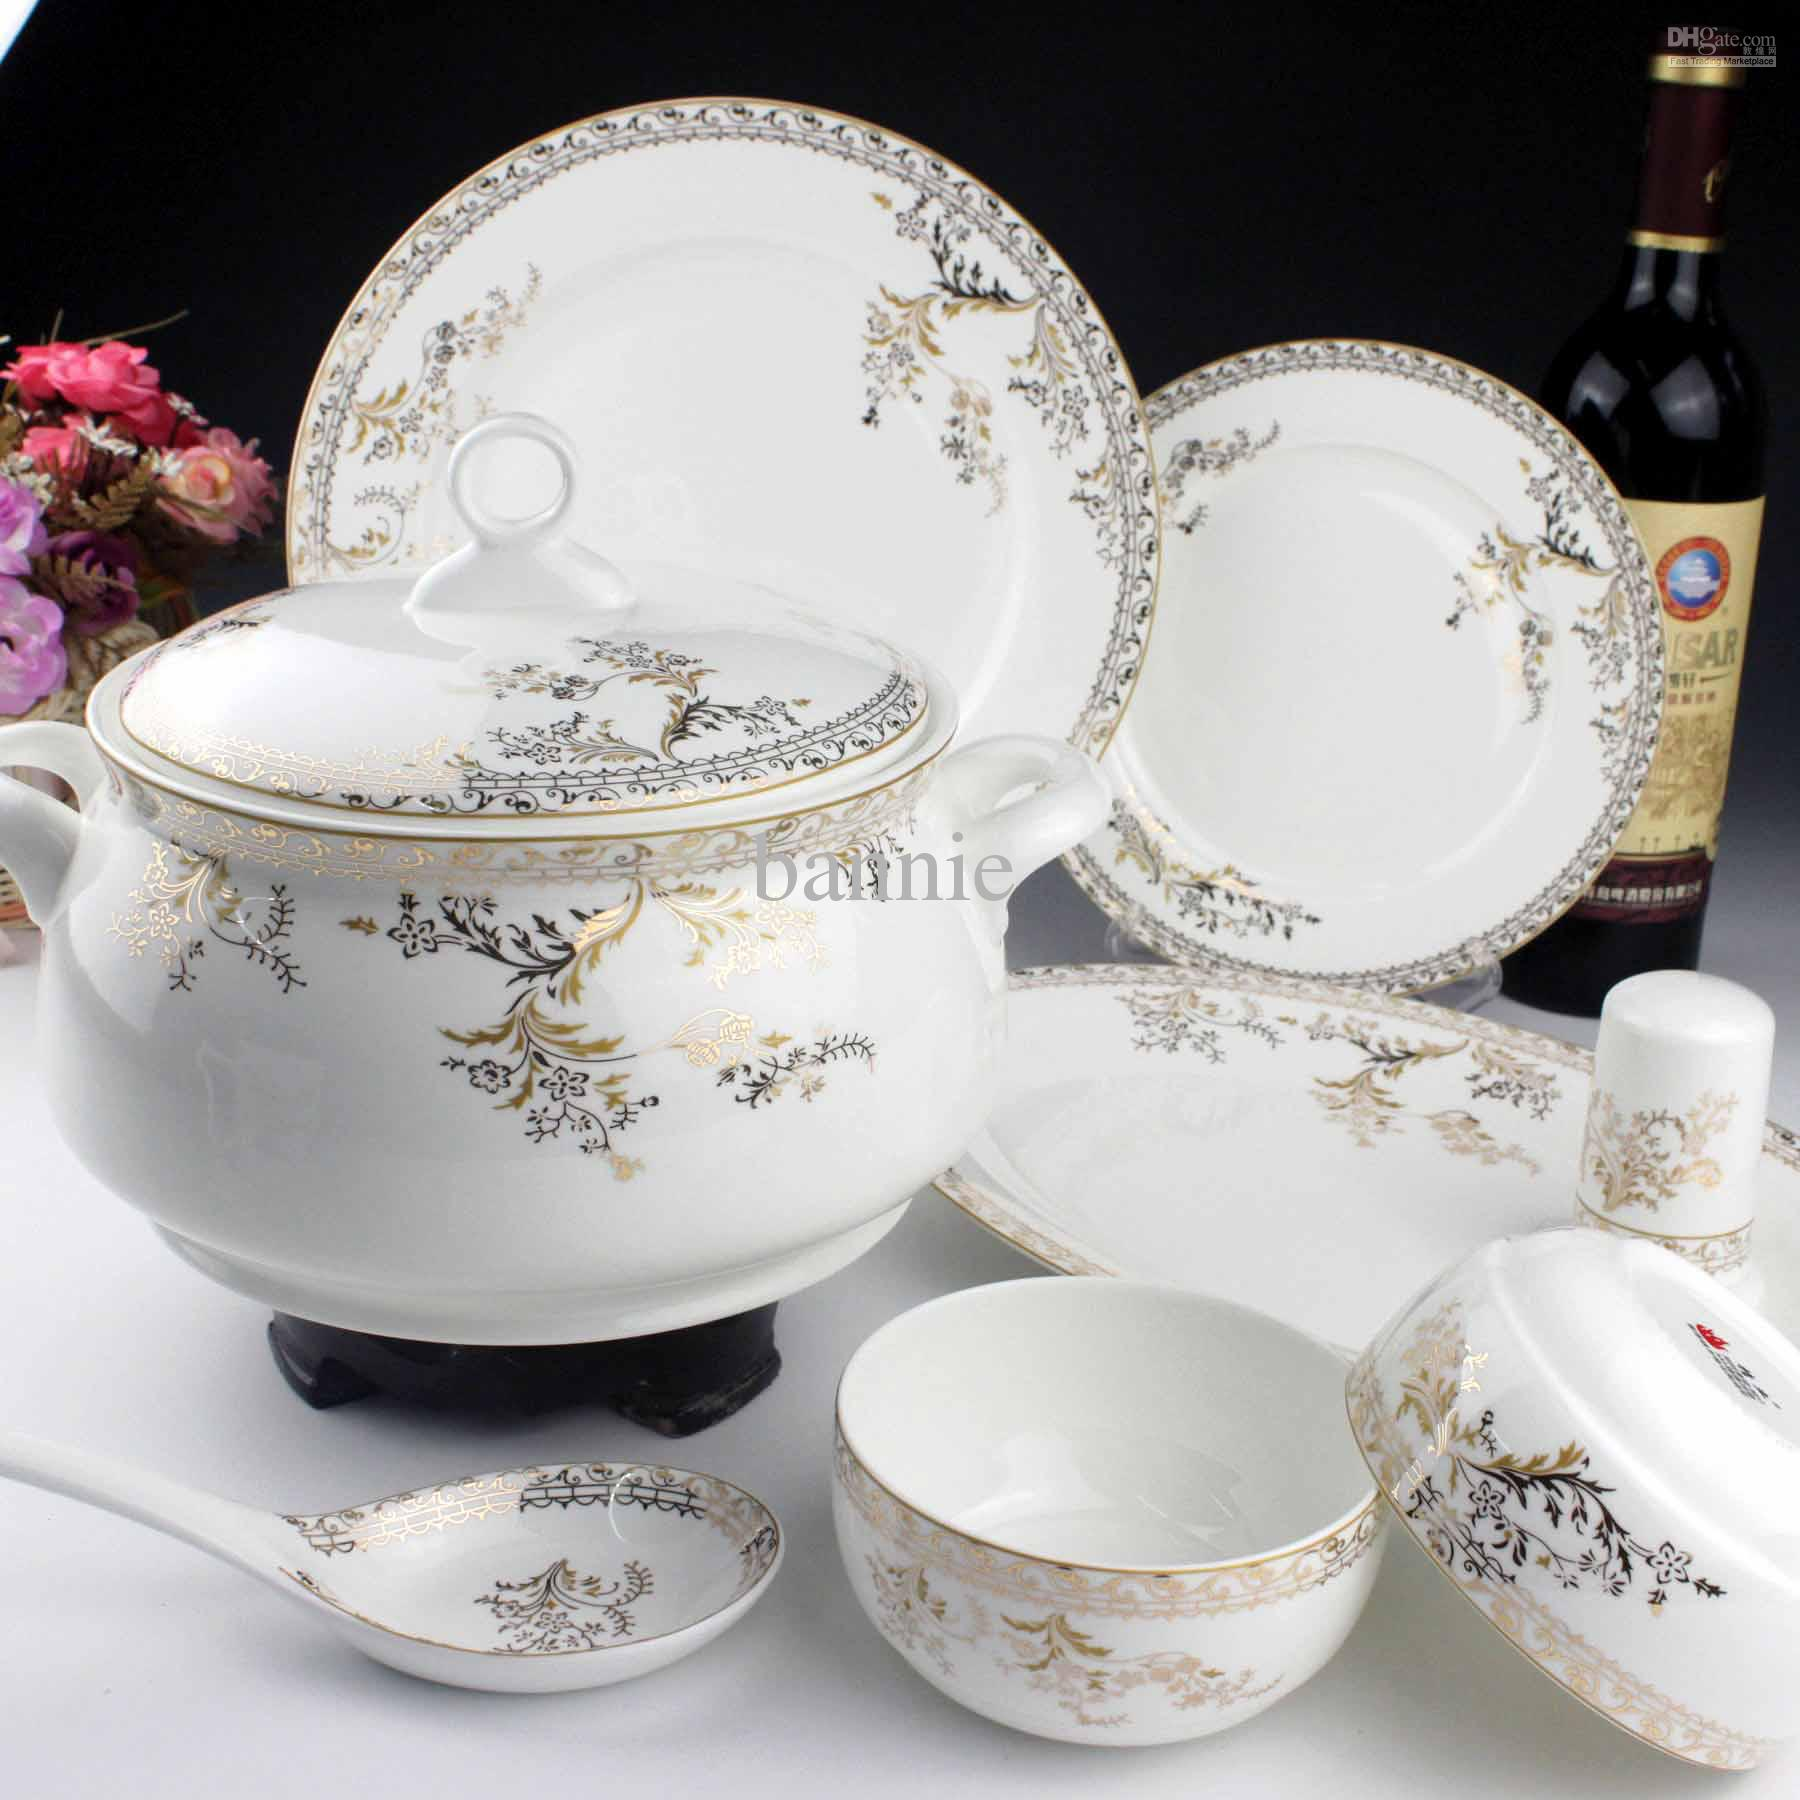 bone china classic european floweral design porcelain. Black Bedroom Furniture Sets. Home Design Ideas